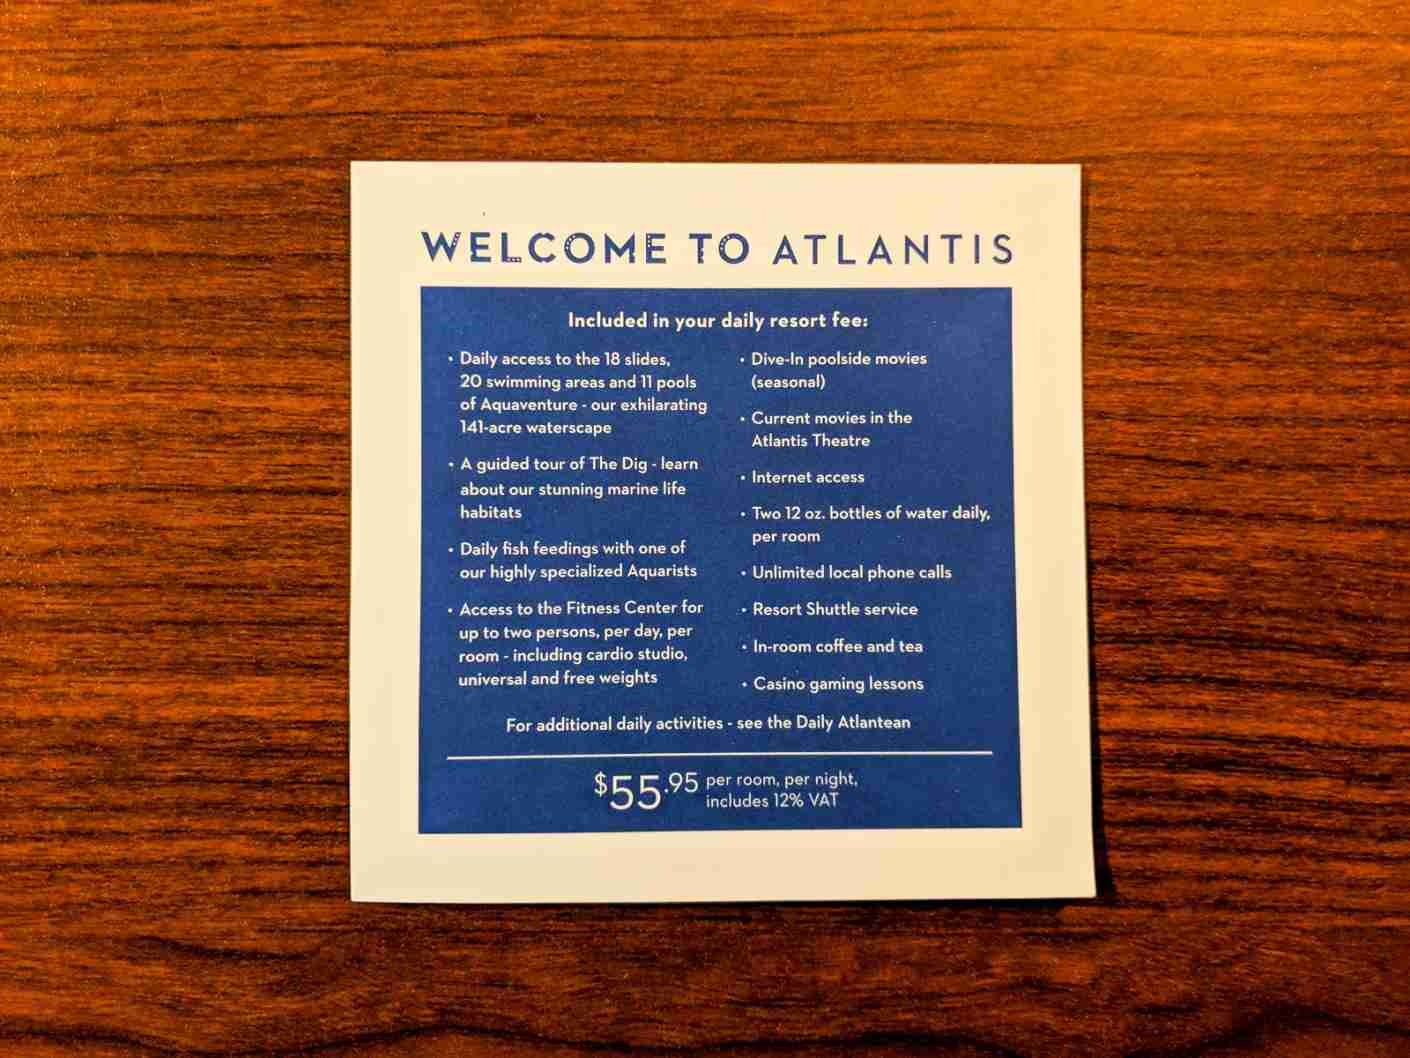 Here is what is included in your resort fees at Atlantis The Beach. (Photo by Katie Genter / The Points Guy)